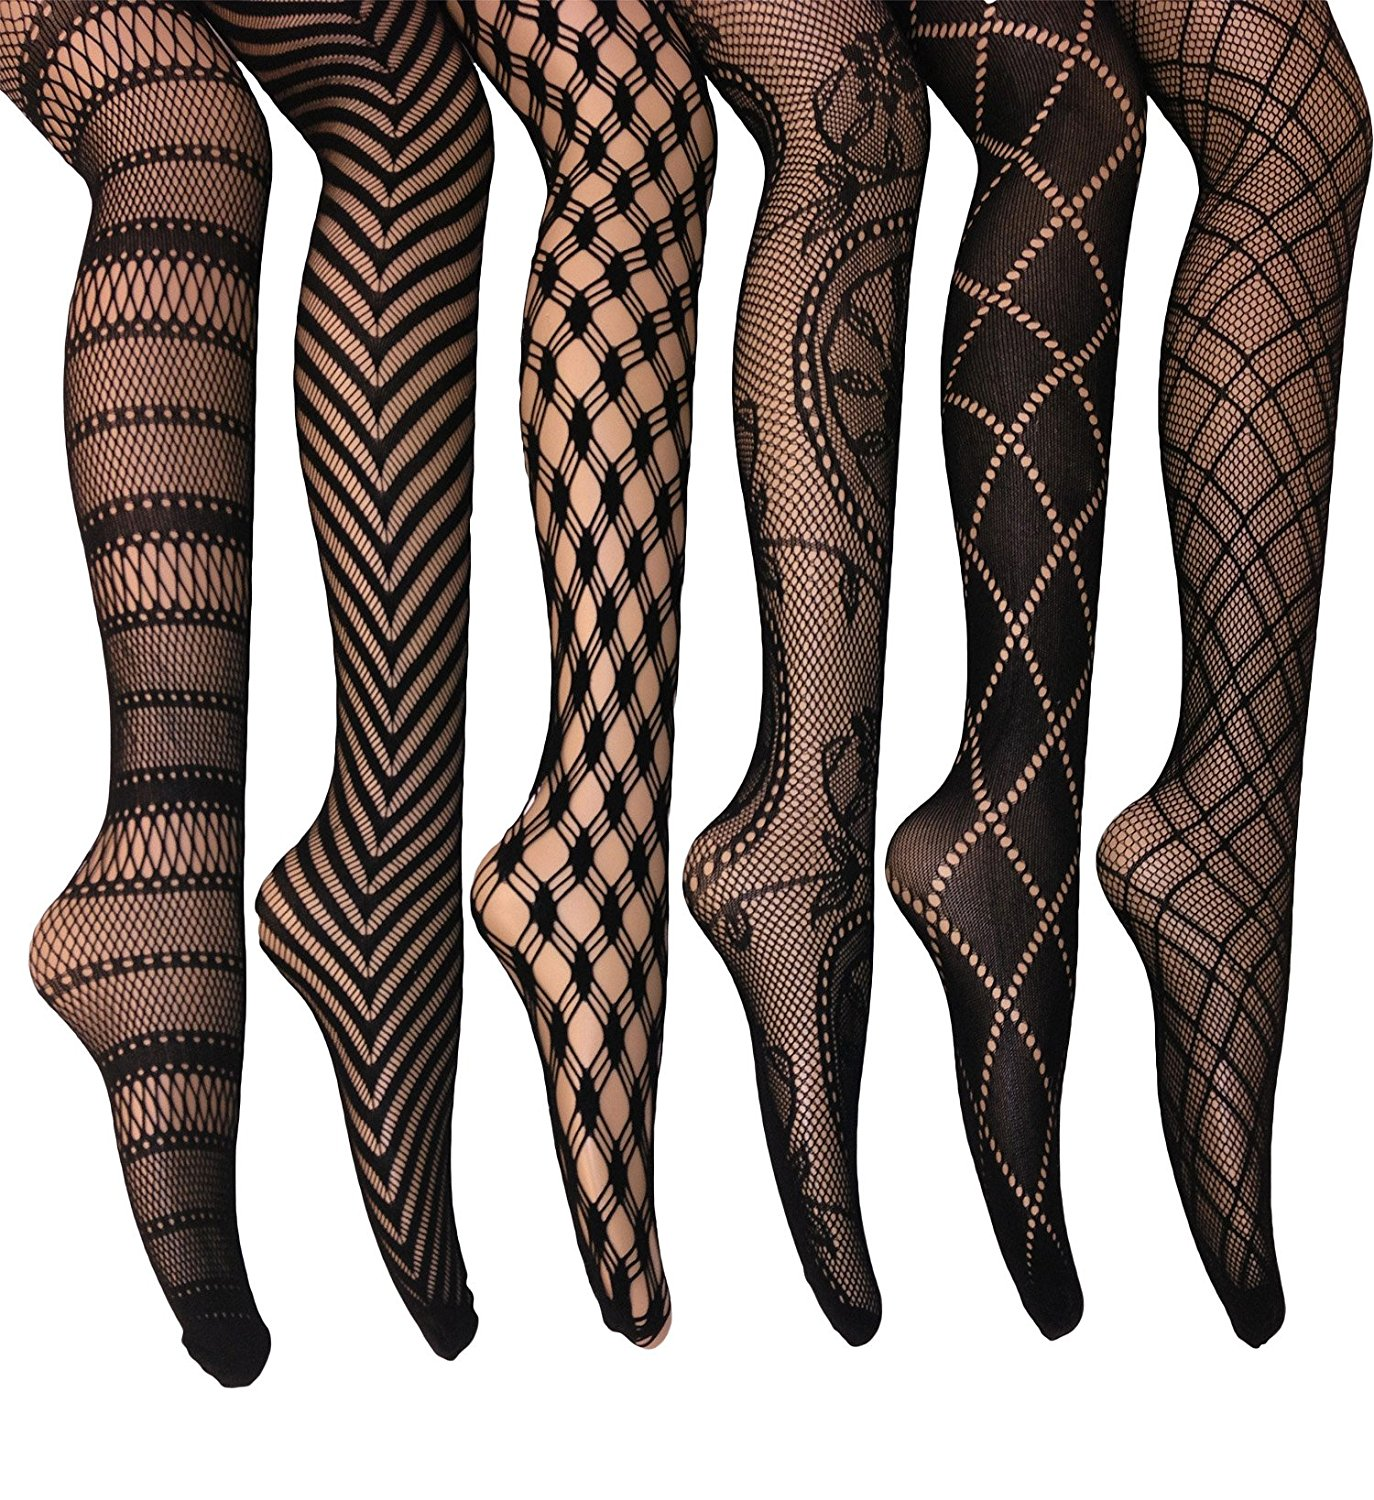 3dbe02ae2ab Get Quotations · Frenchic Fishnet Women s Lace Stockings Tights Sexy  Pantyhose Extended Sizes (Pack of ...